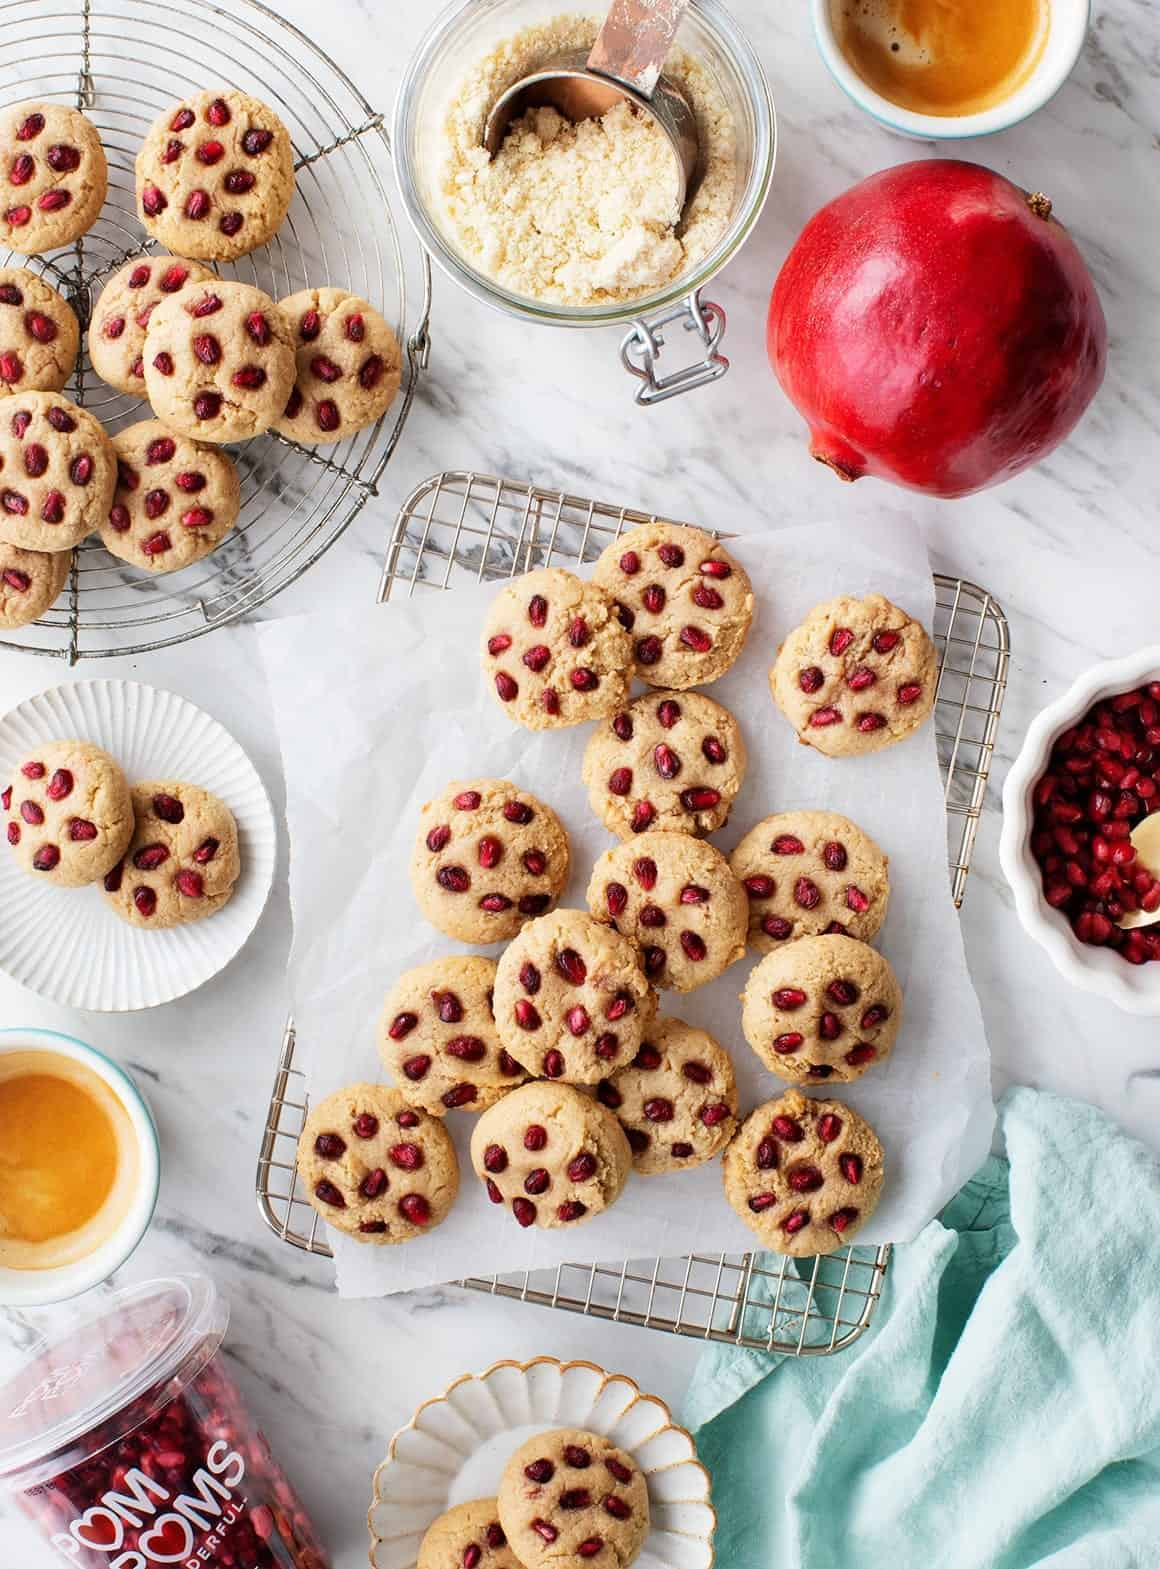 Tahini & Pomegranate Almond Cookies